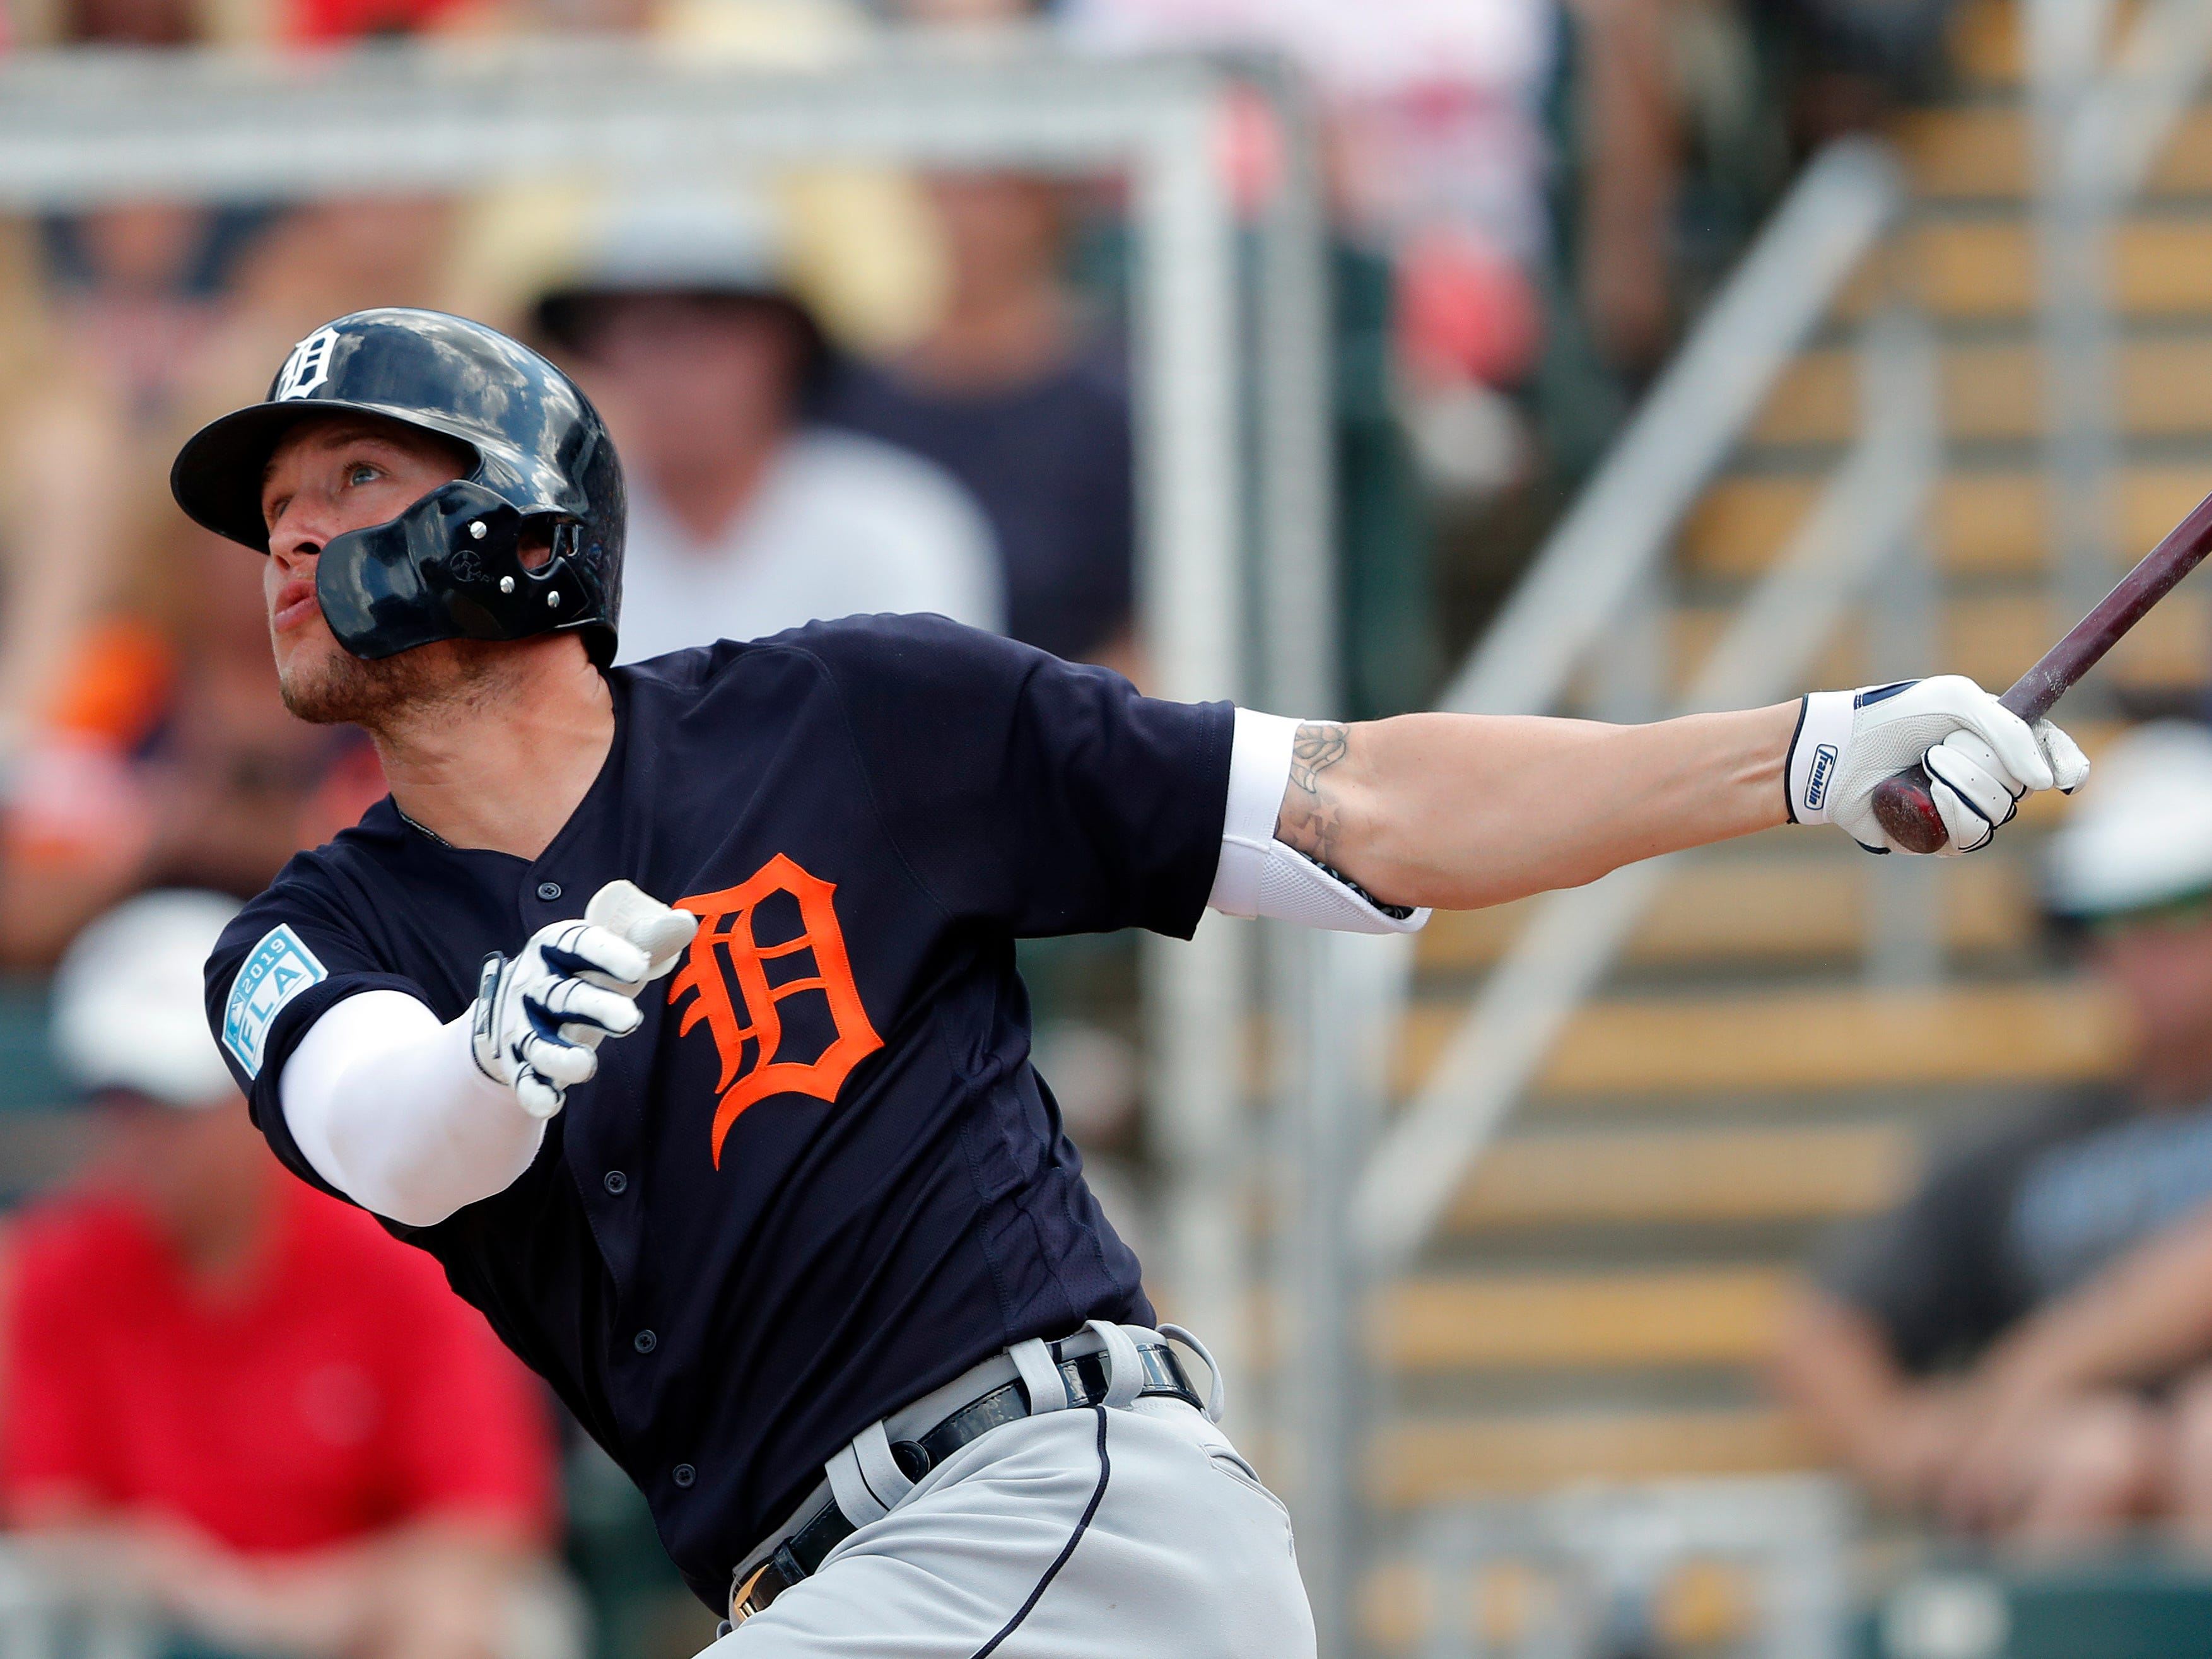 Detroit Tigers left fielder JaCoby Jones (21) follows through on a two-run home run in the fifth inning of a spring training baseball game against the Minnesota Twins Monday, March 11, 2019, in Fort Myers, Fla.